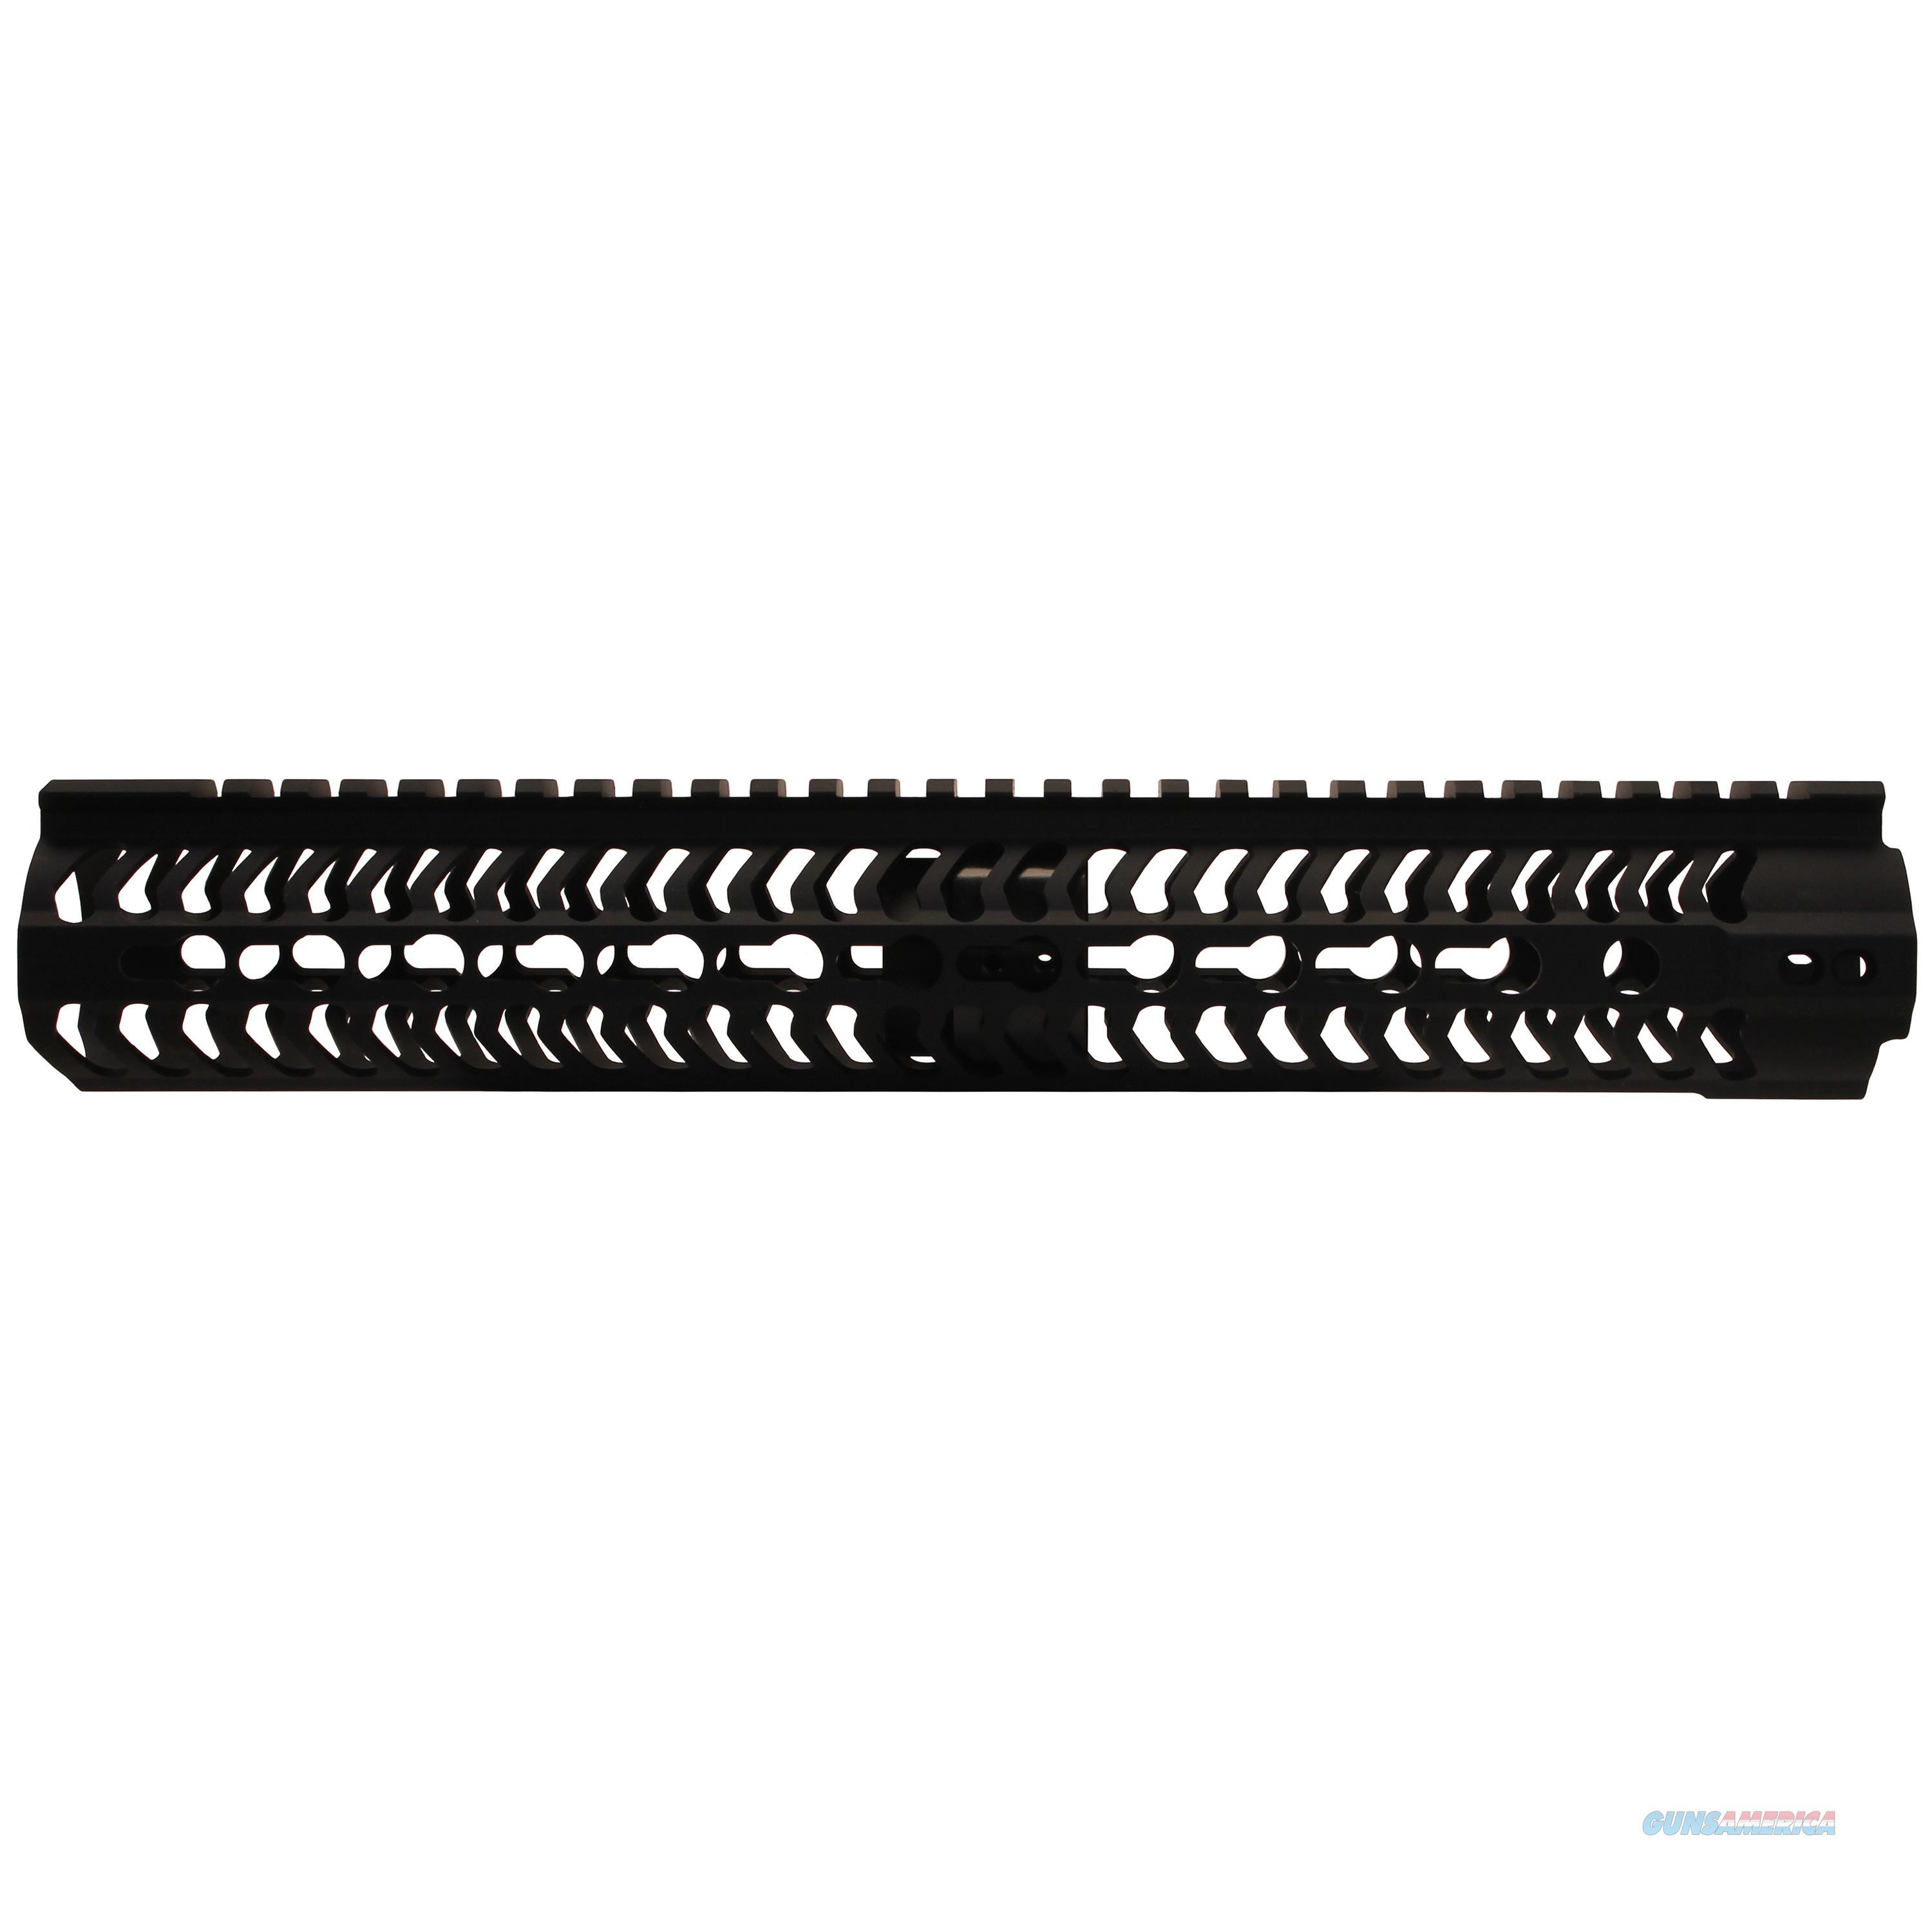 Odin Works Keymod Free Float Forend F12KM  Non-Guns > Gun Parts > Tactical Rails (Non-AR)